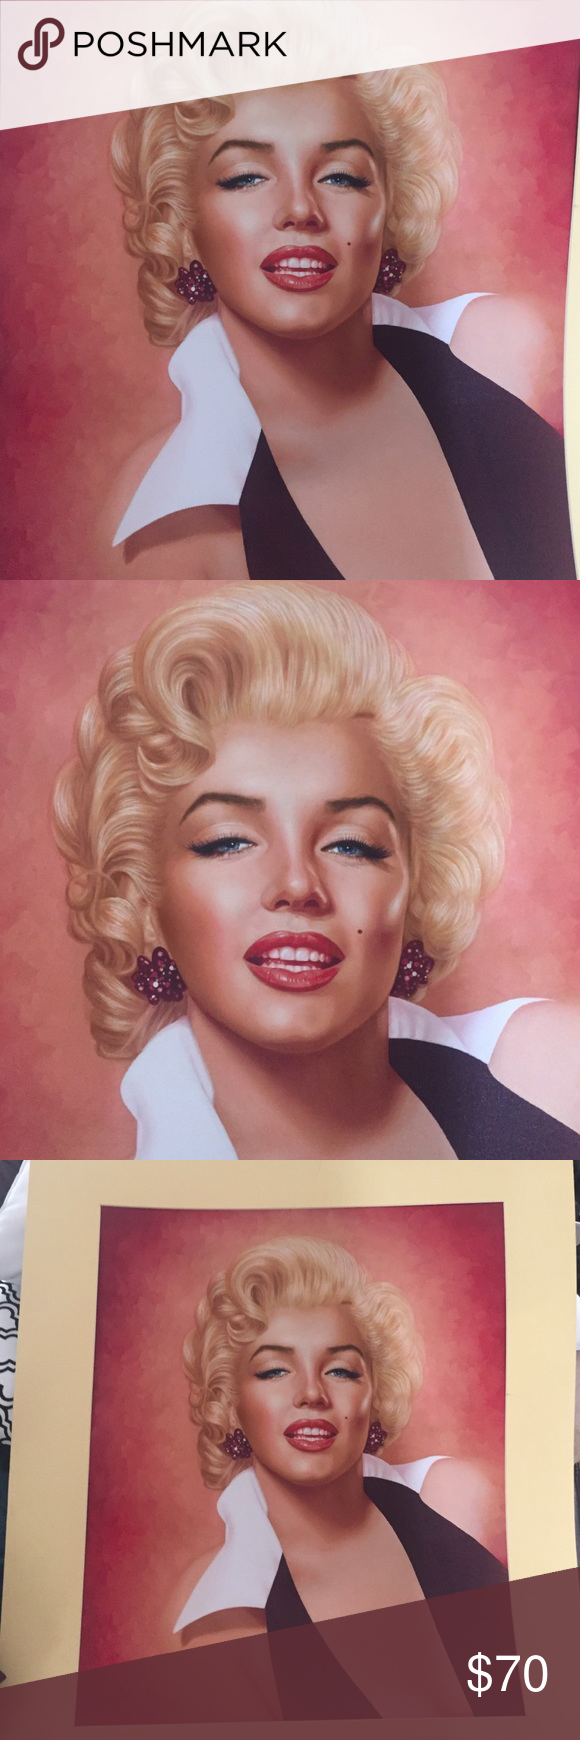 Marilyn Monroe painting Beautiful Marilyn Monroe oil painting. Can fit on an 18x 24 frame or larger Other